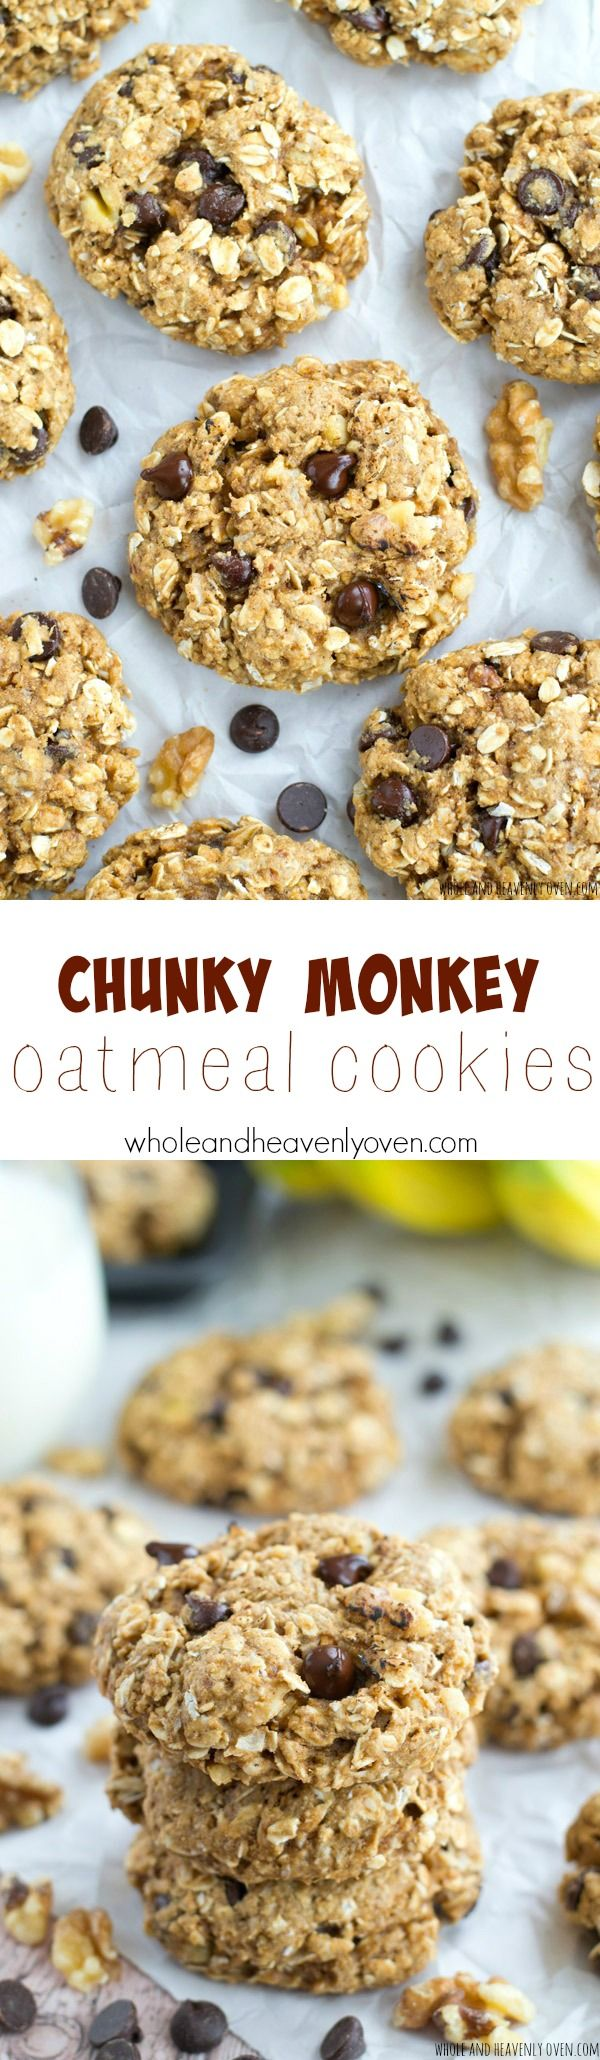 Packed with peanut butter, banana, gooey chocolate and lots of other goodies, these loaded oatmeal cookies are sure to become a cookie jar staple! @WholeHeavenly